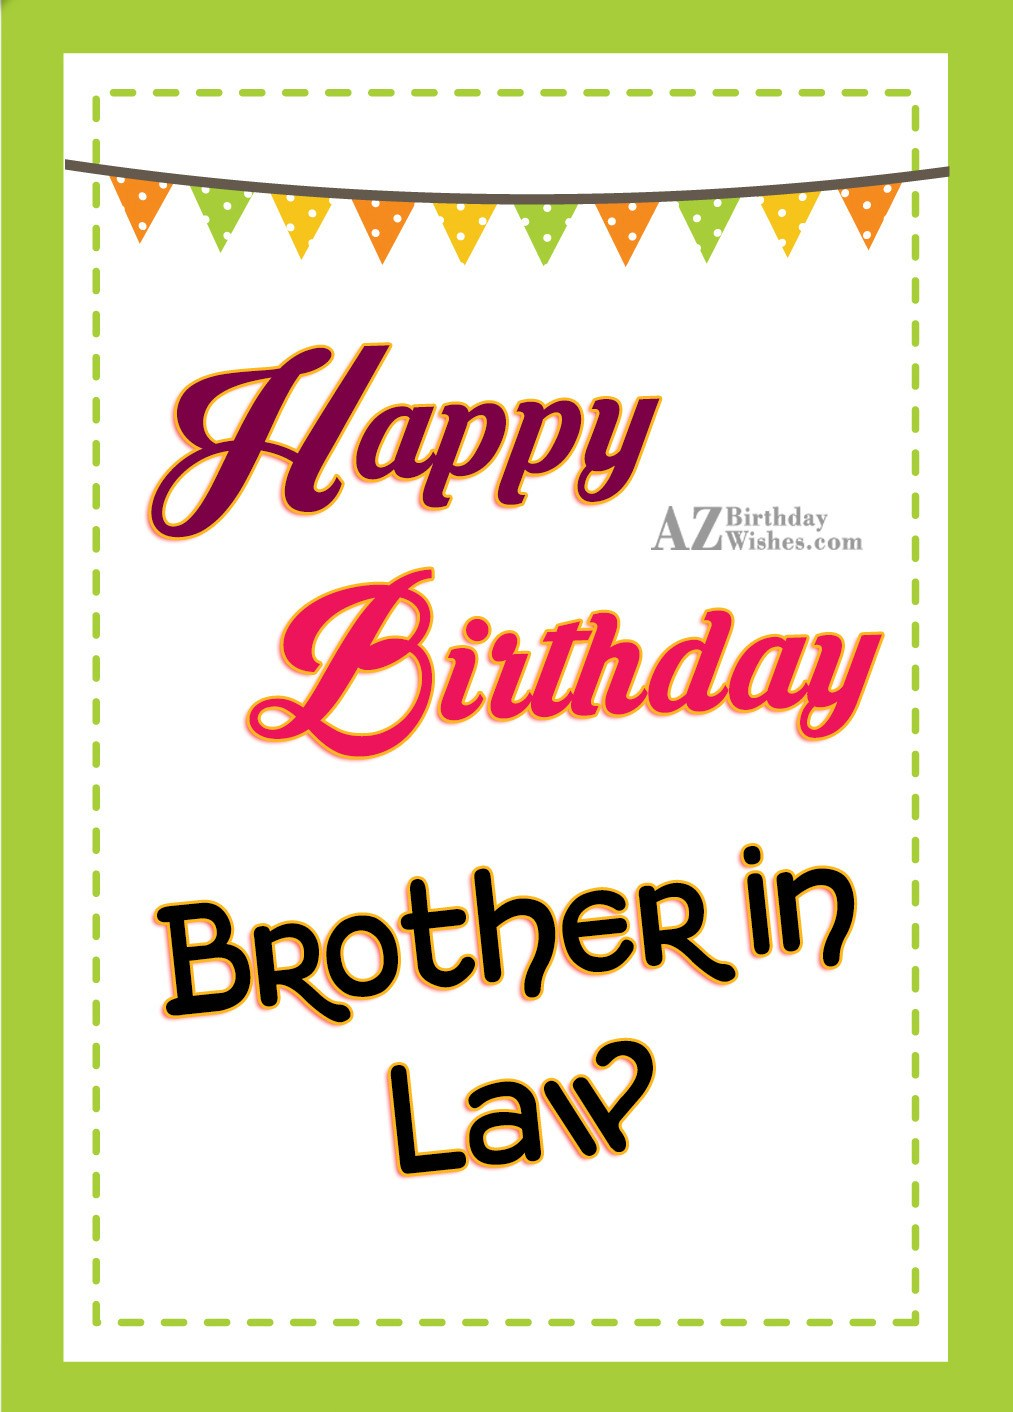 I Wish You A Very Happy Birthday My Dear Brother In Law